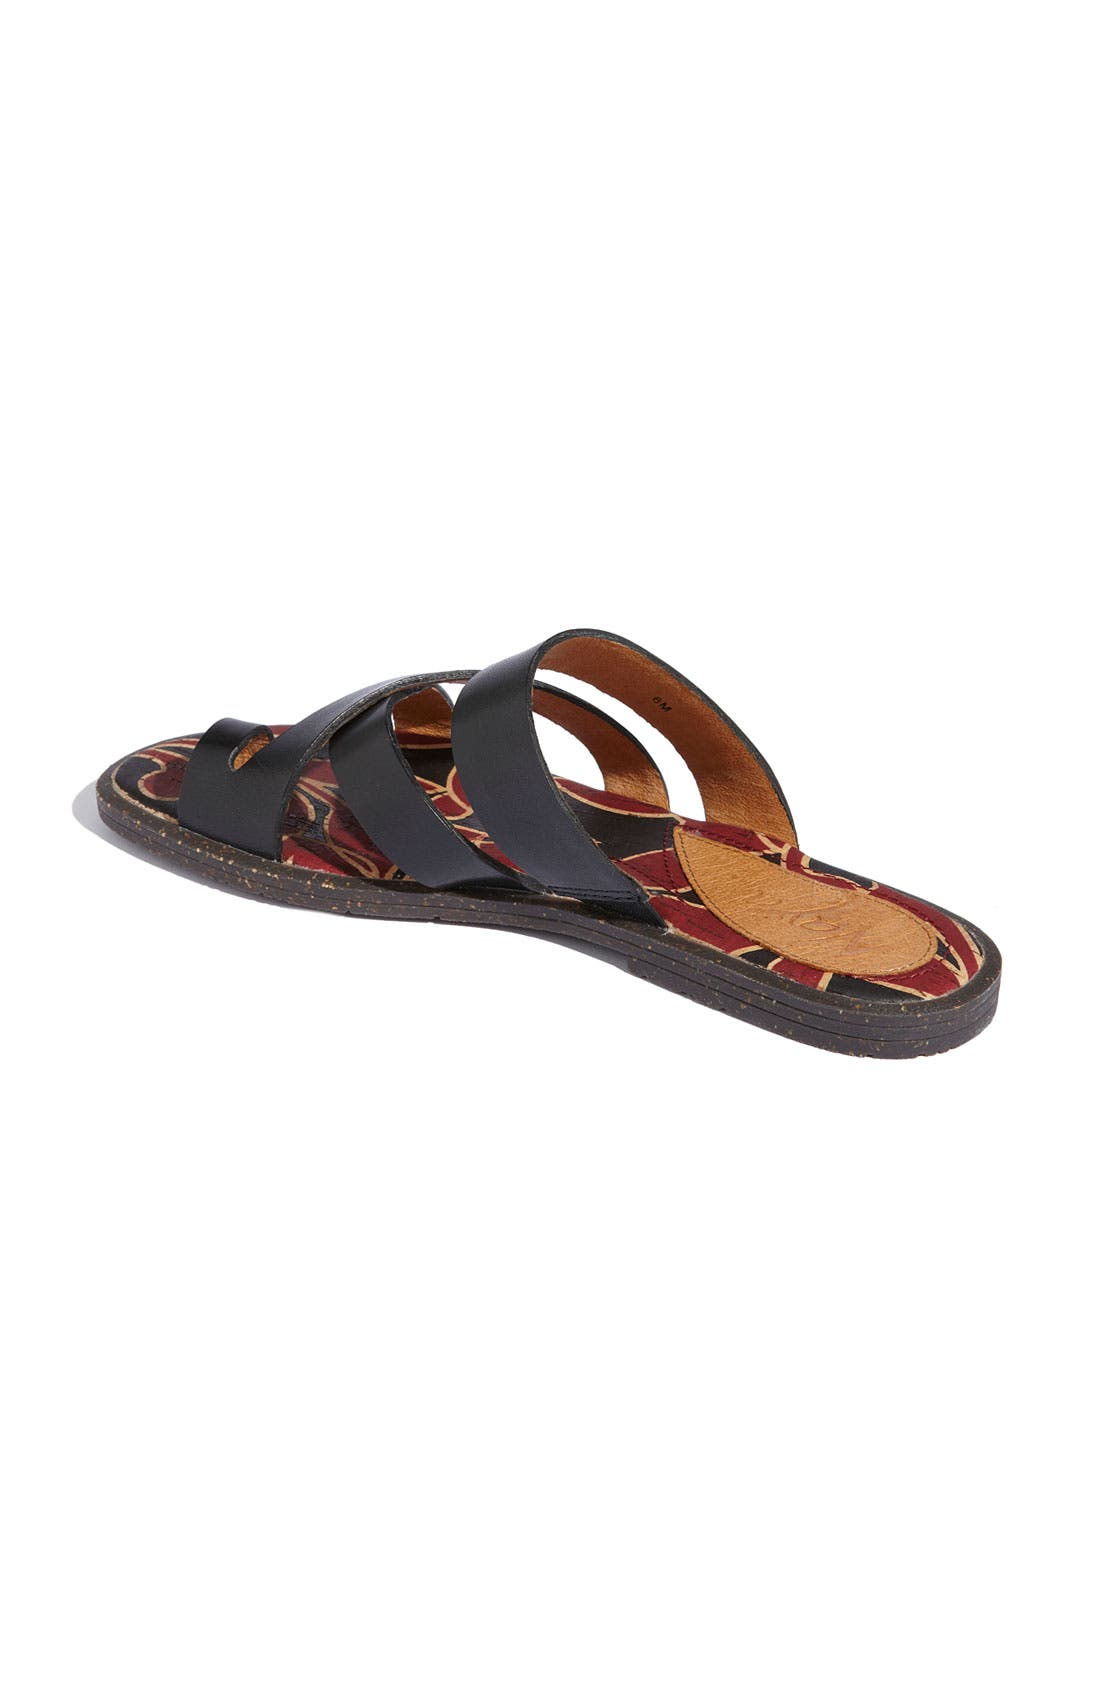 Alternate Image 2  - Naya 'Zoe' Sandal